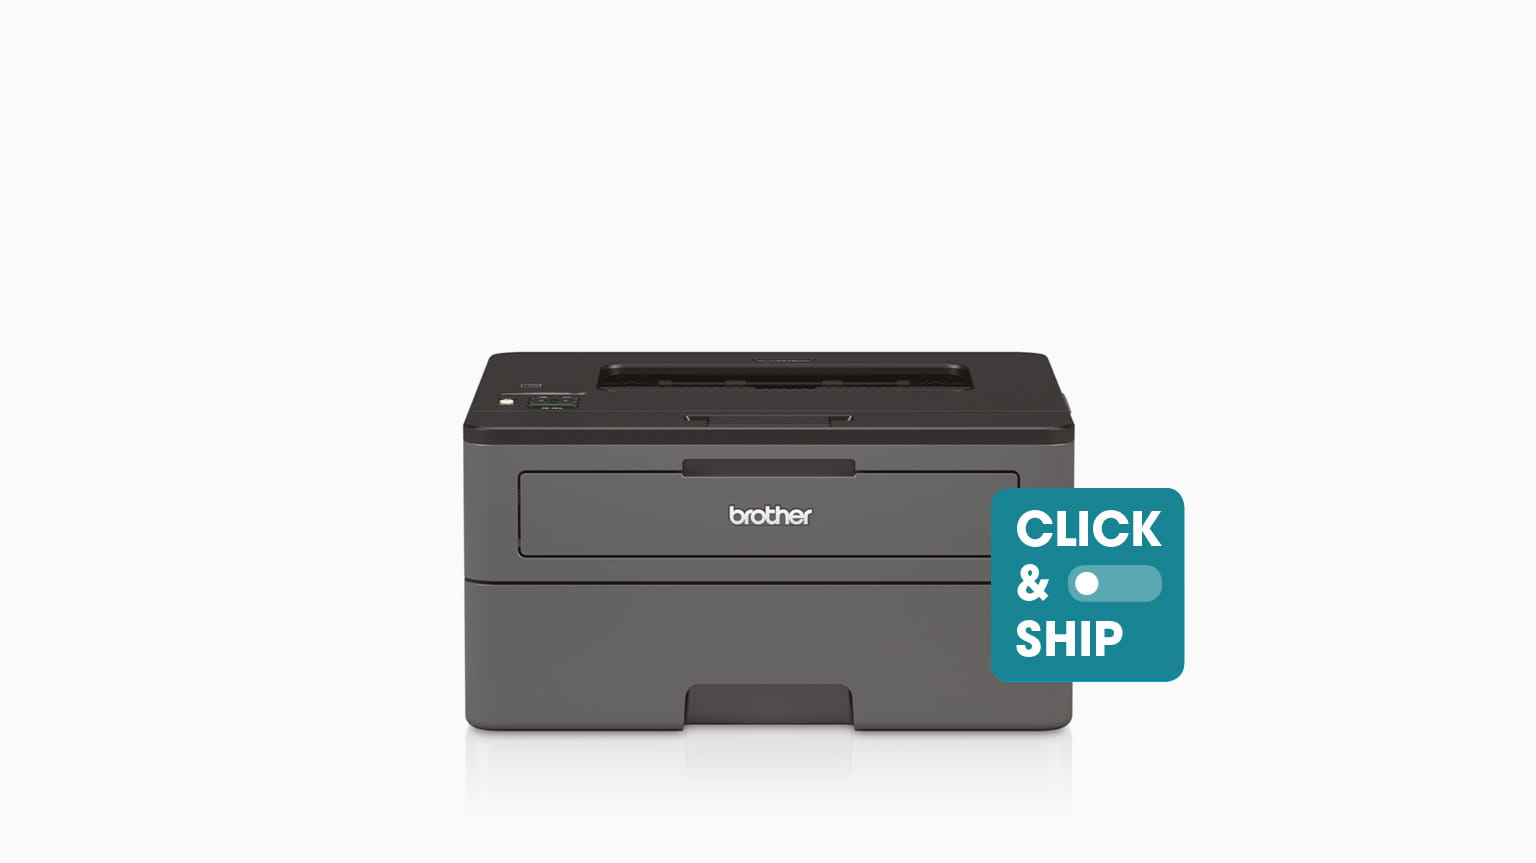 Brother HL-L2375DW Click and Ship Modell